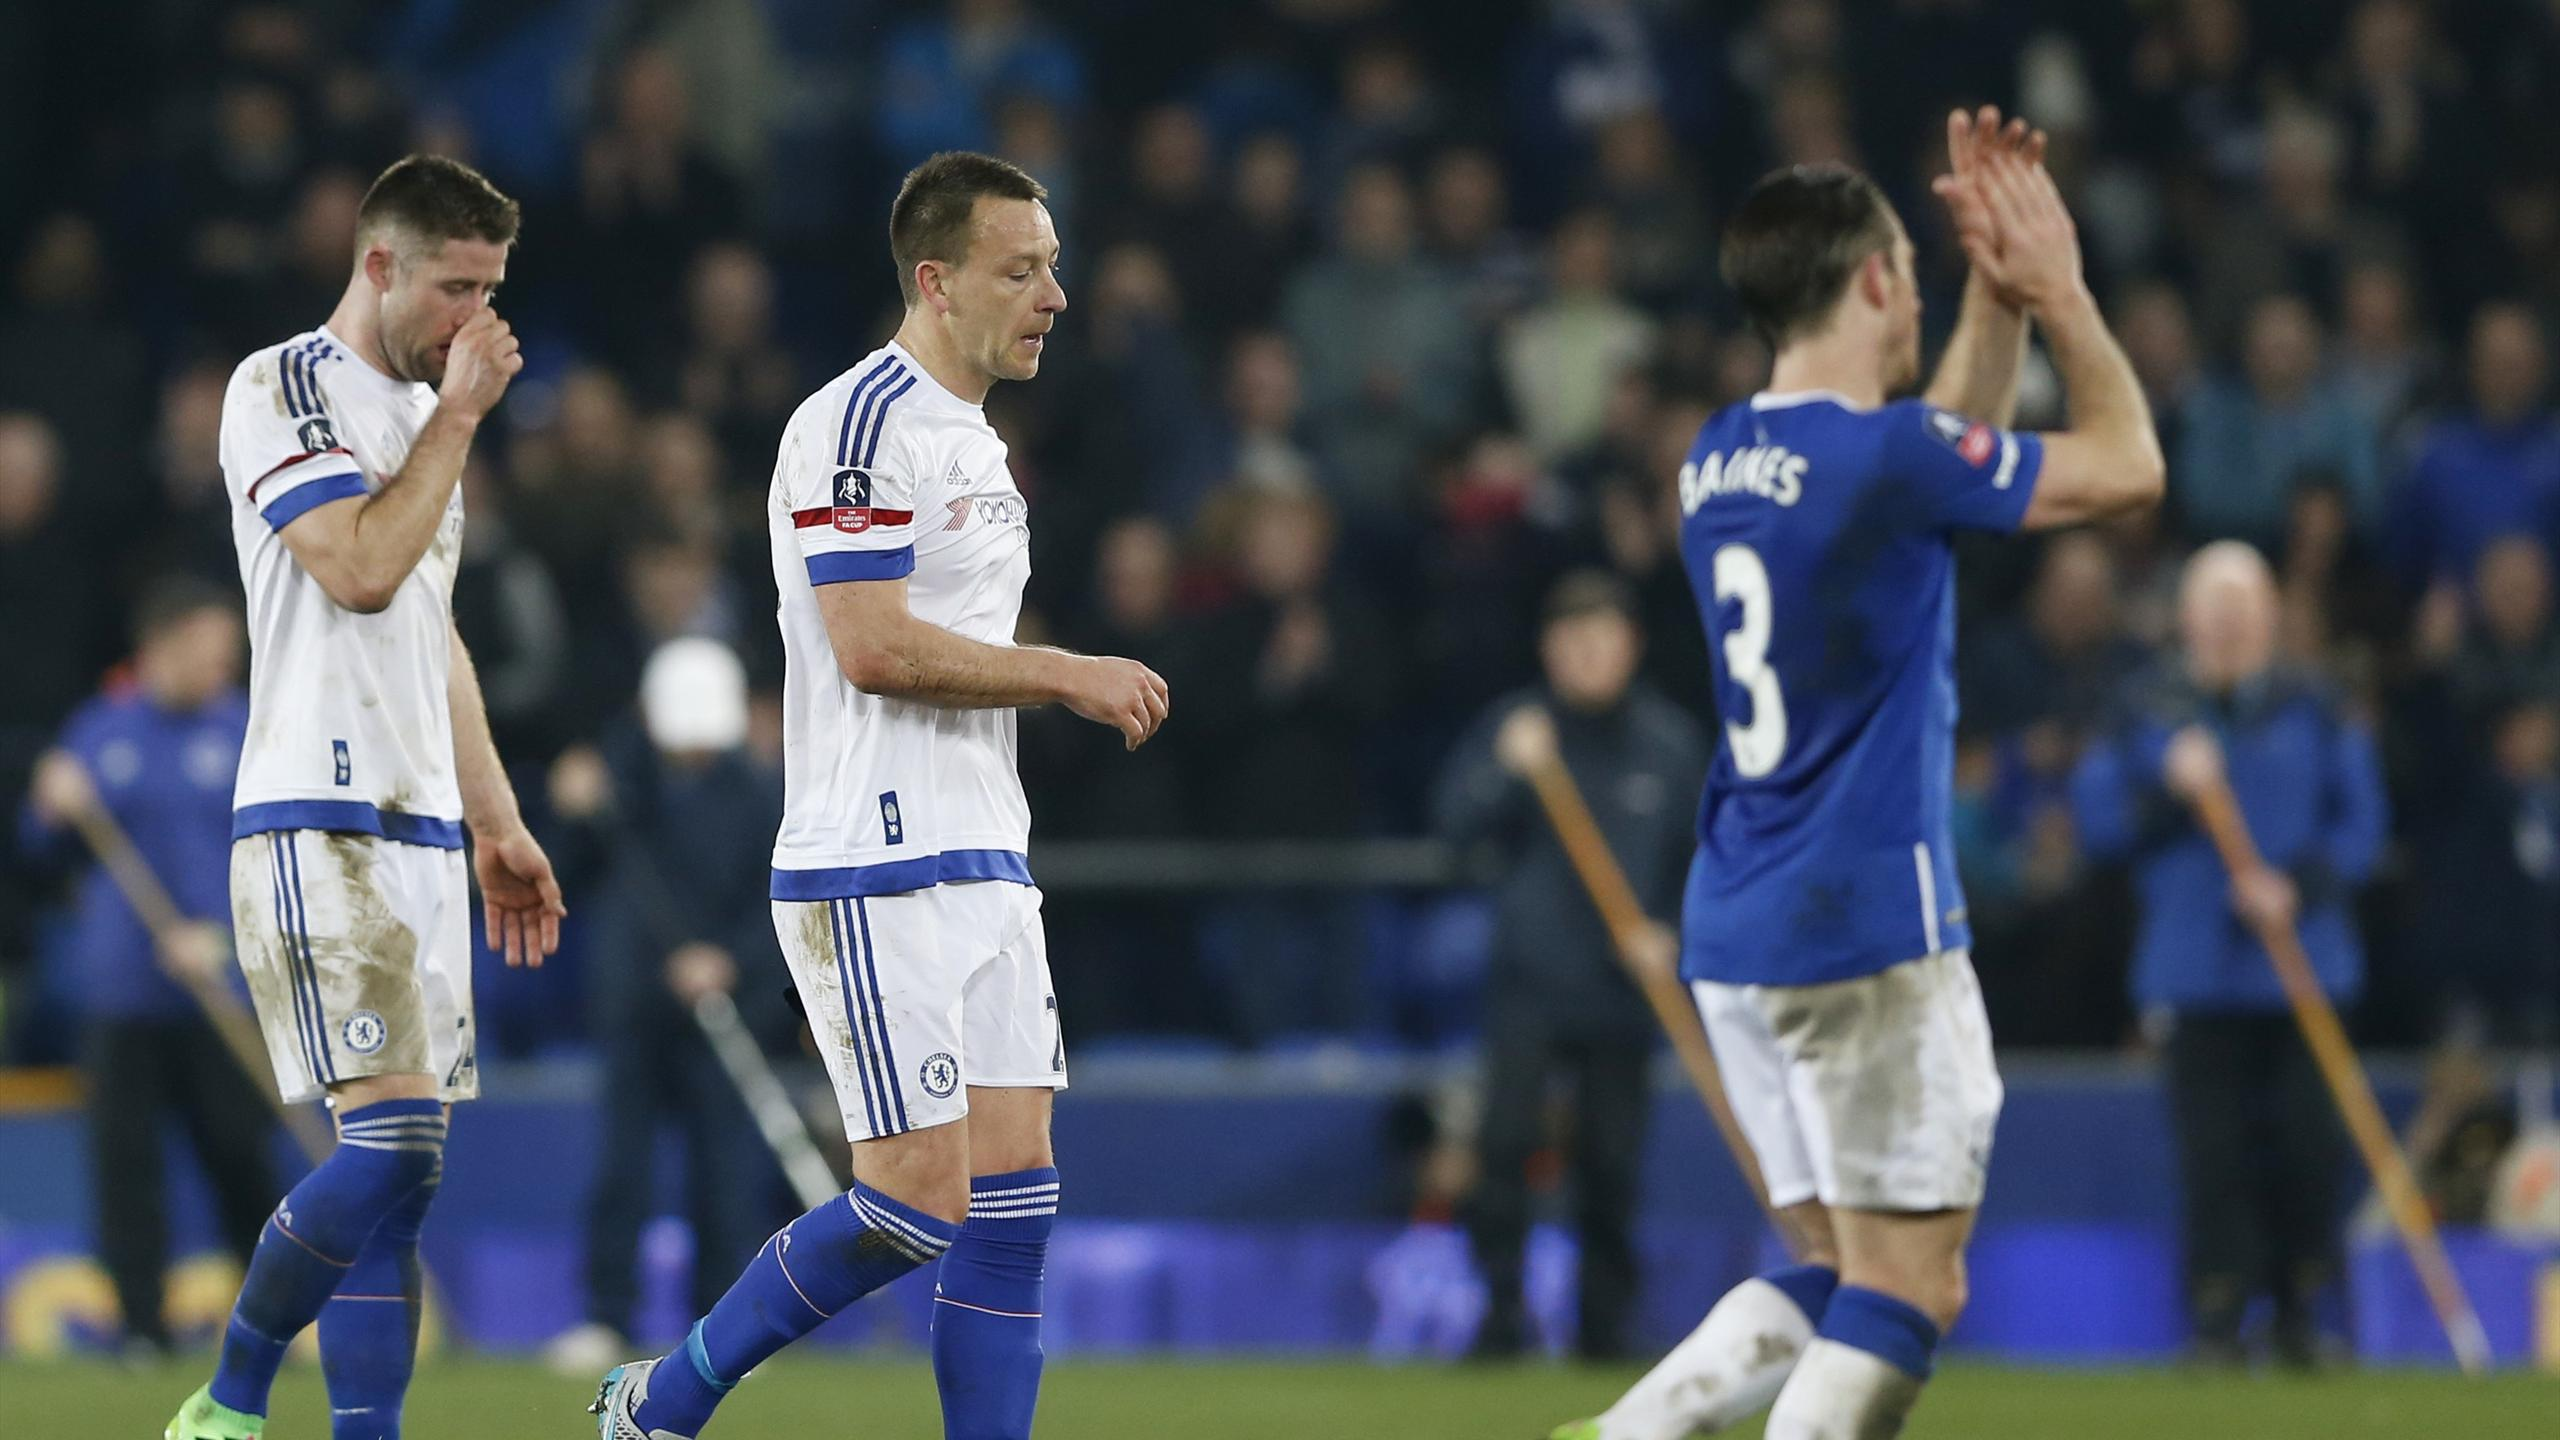 Chelsea's Gary Cahill and John Terry look dejected at the end of the game